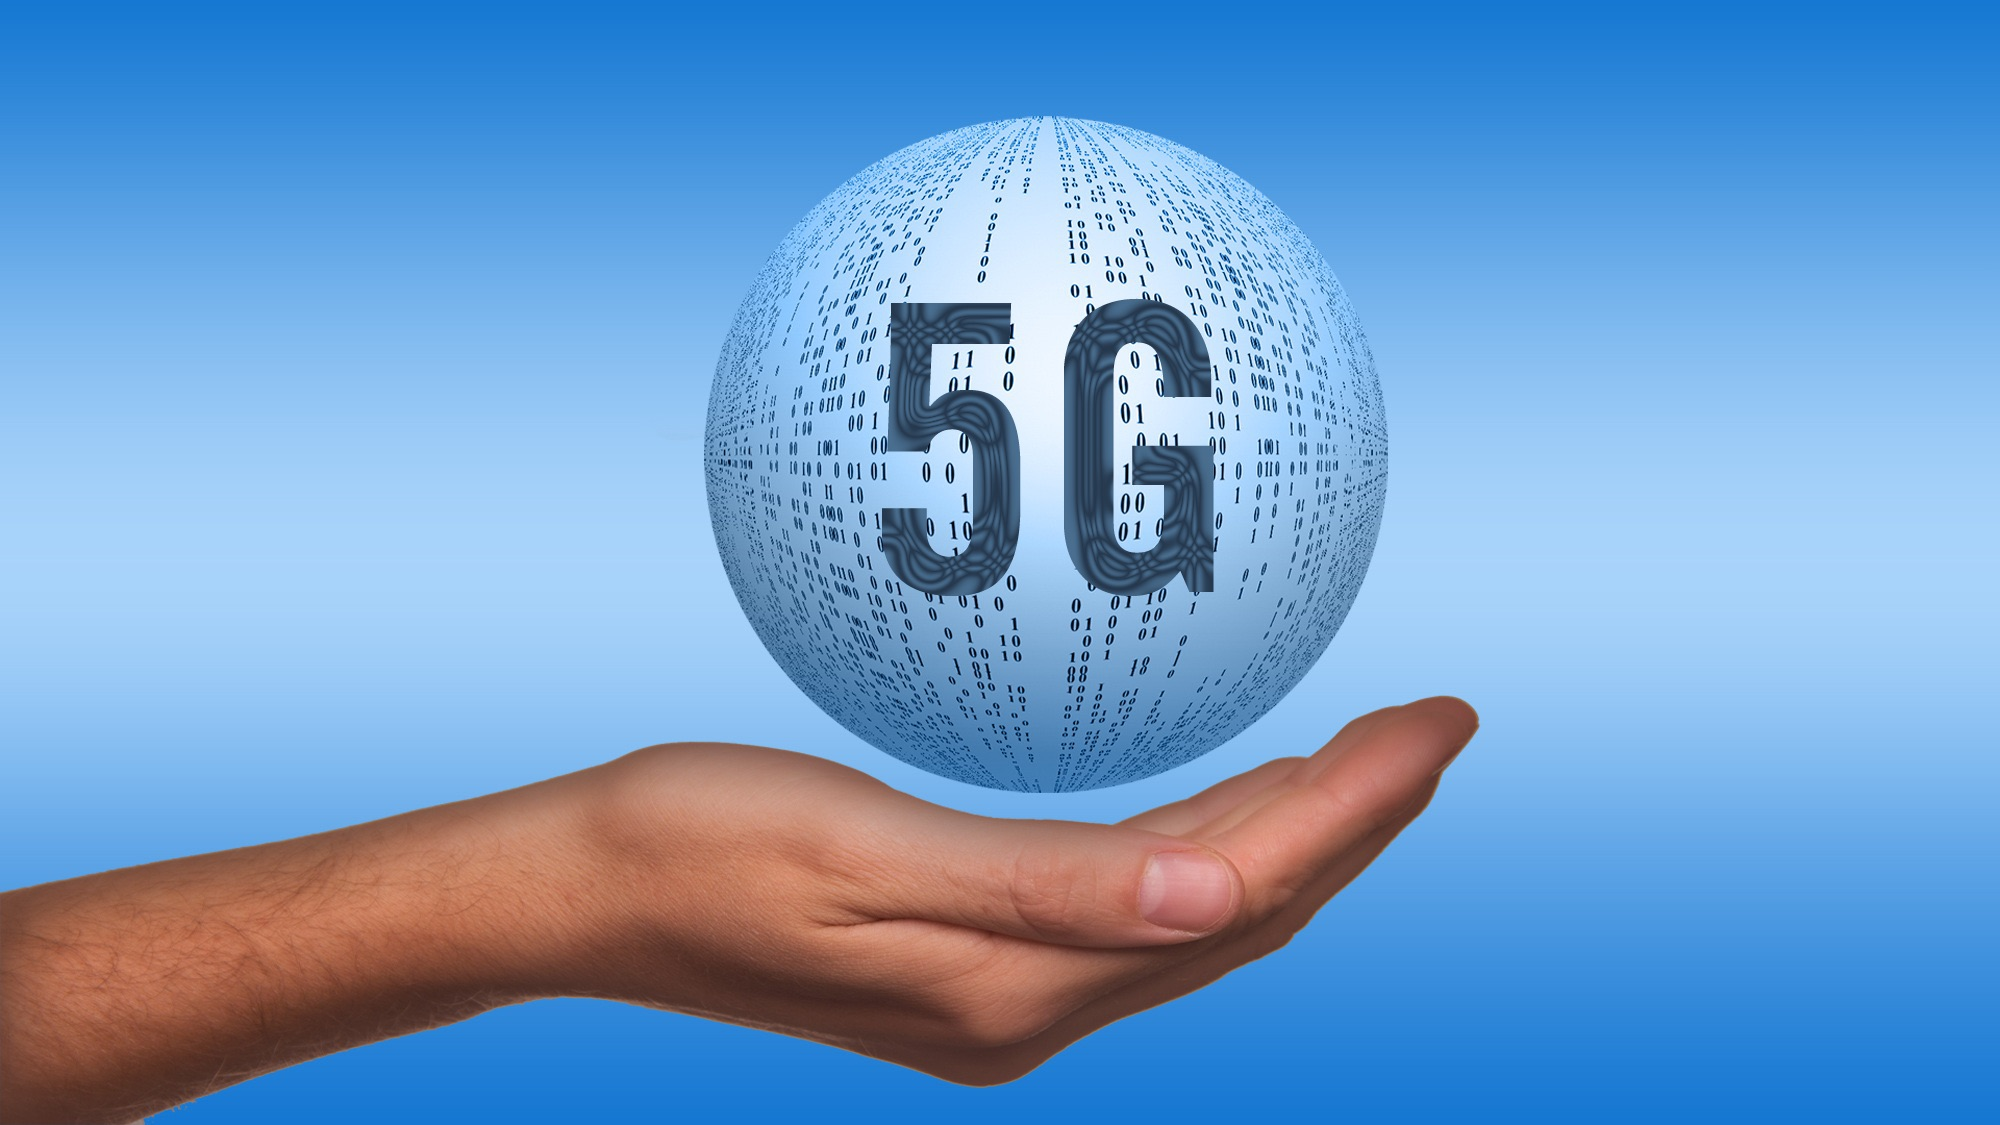 Apple Files for Two 5G-Related Patents Ahead of its First 5G iPhone Launch This Fall